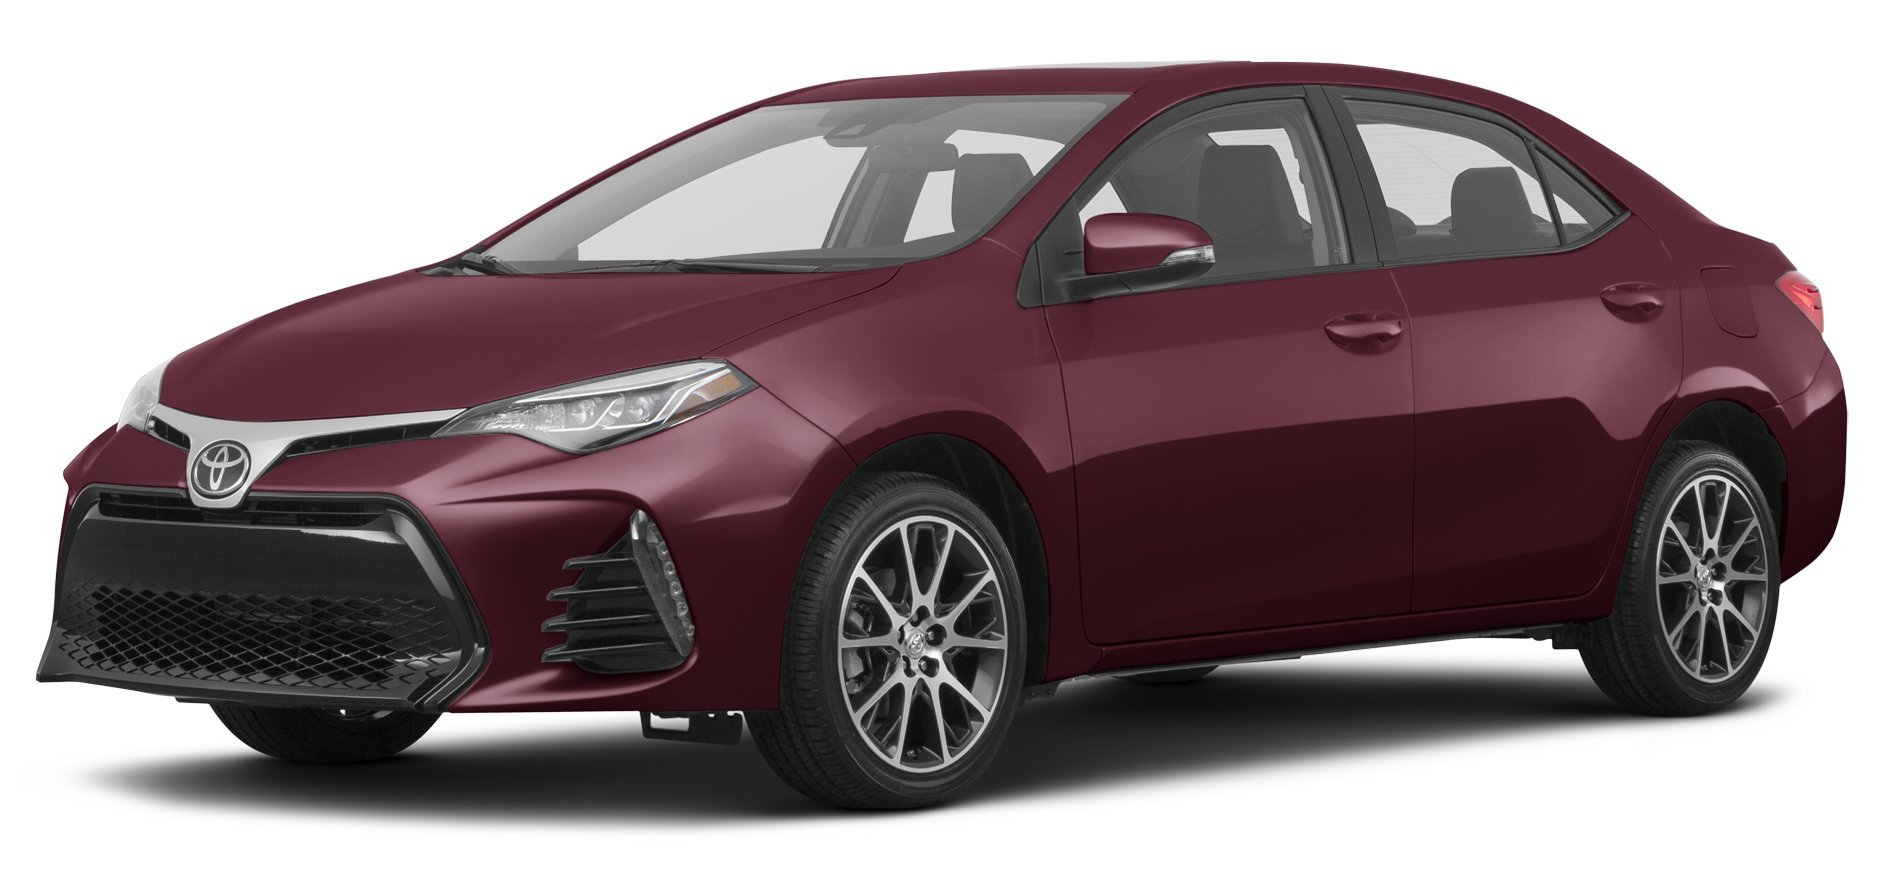 2017 toyota corolla reviews images and specs vehicles. Black Bedroom Furniture Sets. Home Design Ideas